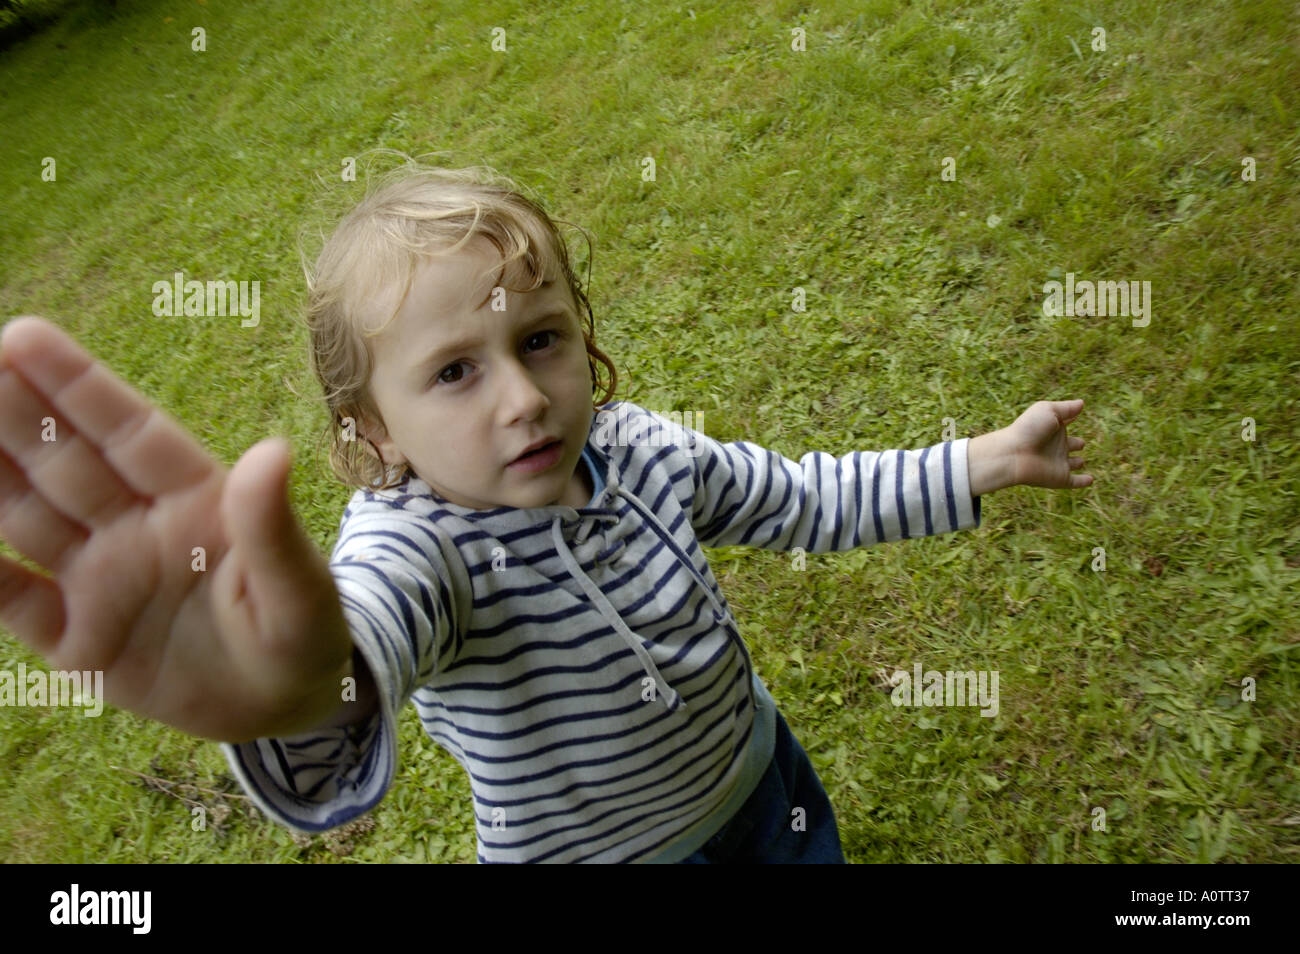 Little girl with wet hair gesturing towards the camera. Stock Photo